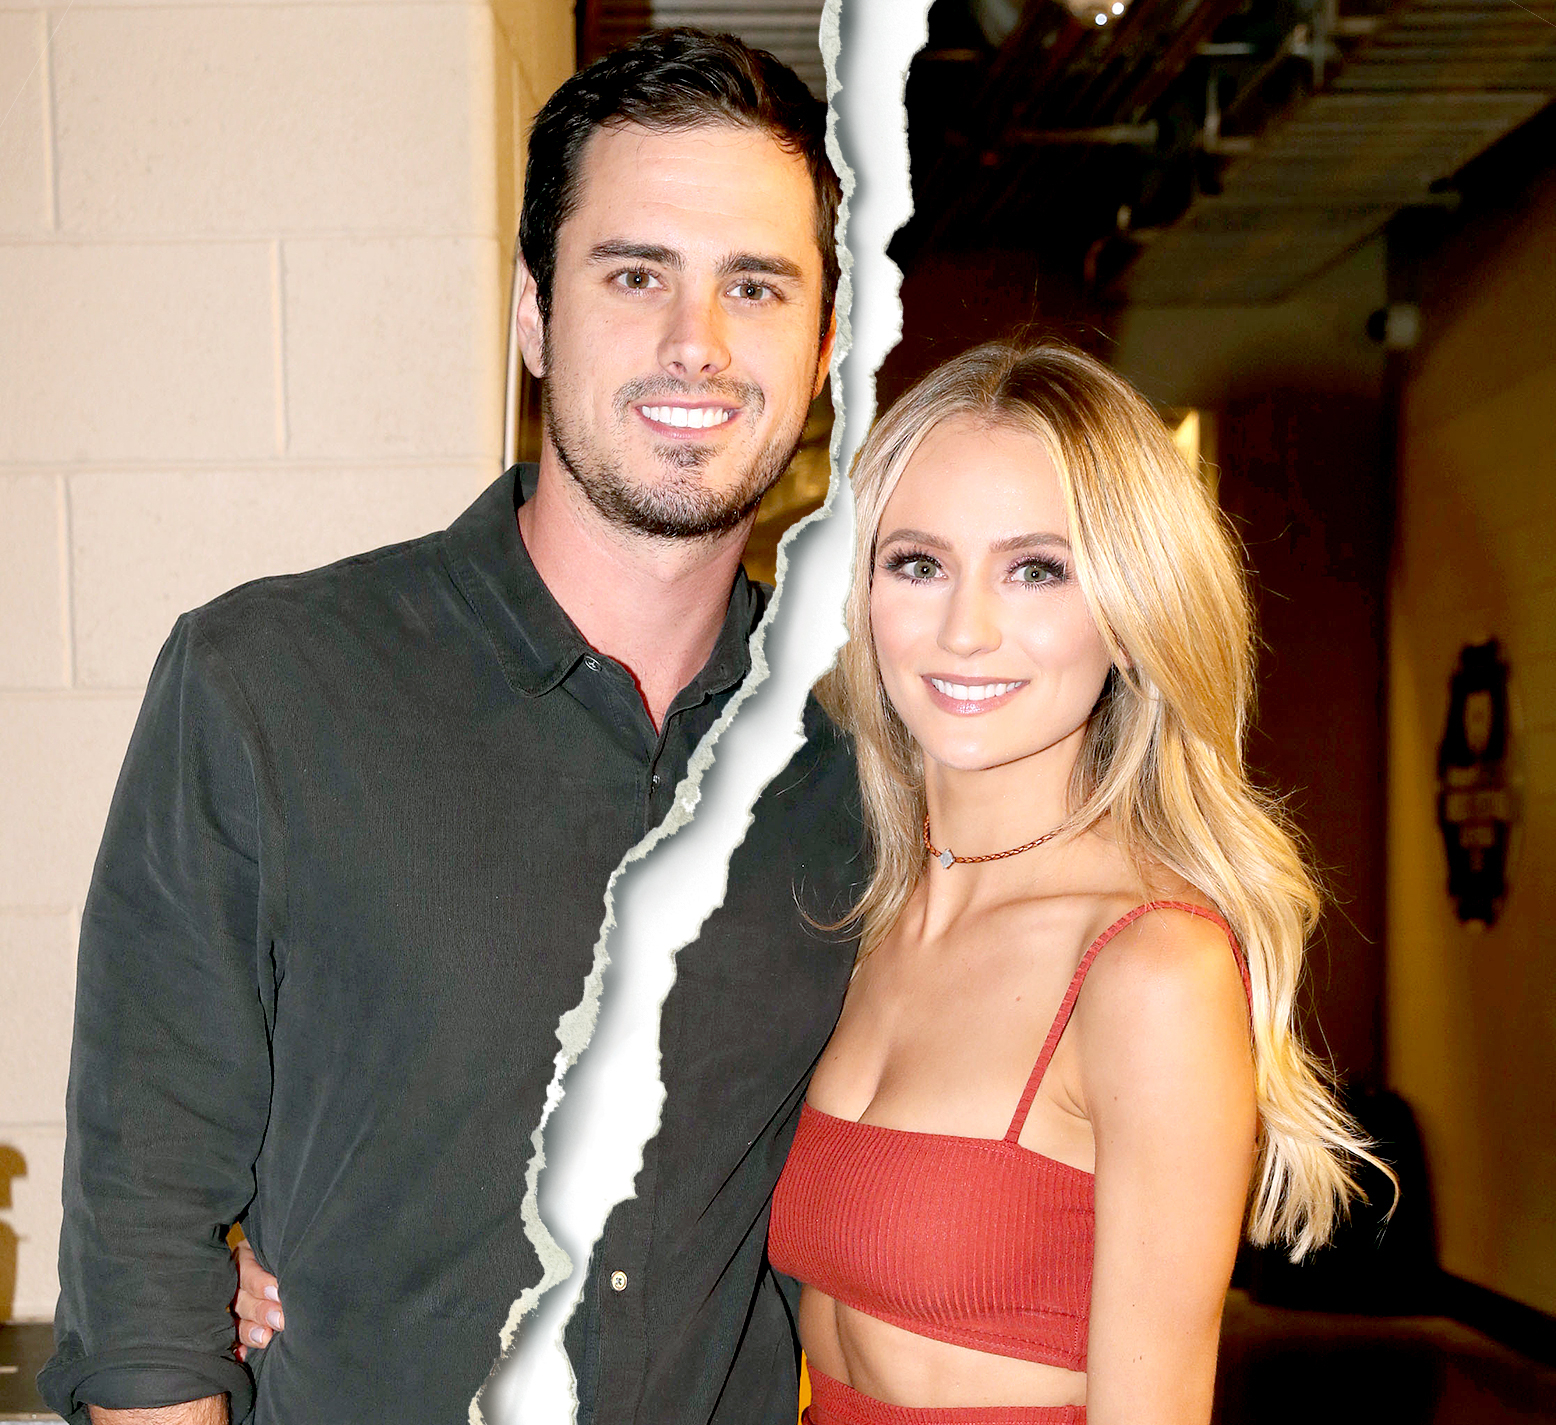 Ben Higgins and Lauren Bushnell attend the 2016 iHeartRadio Music Festival at T-Mobile Arena on September 23, 2016 in Las Vegas, Nevada.